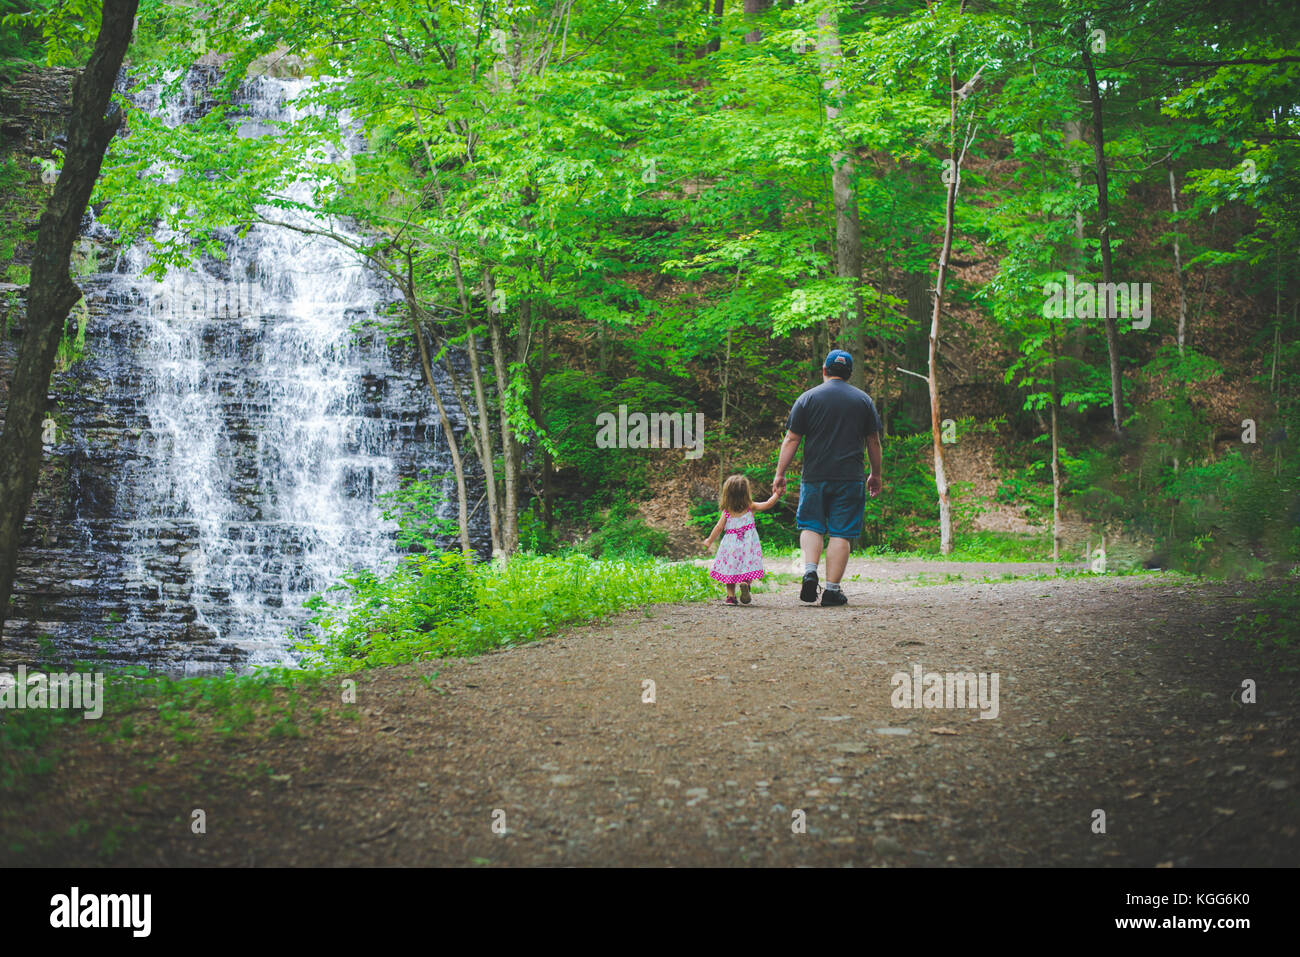 A child walks hand in hand with her father along a wooden path - Stock Image